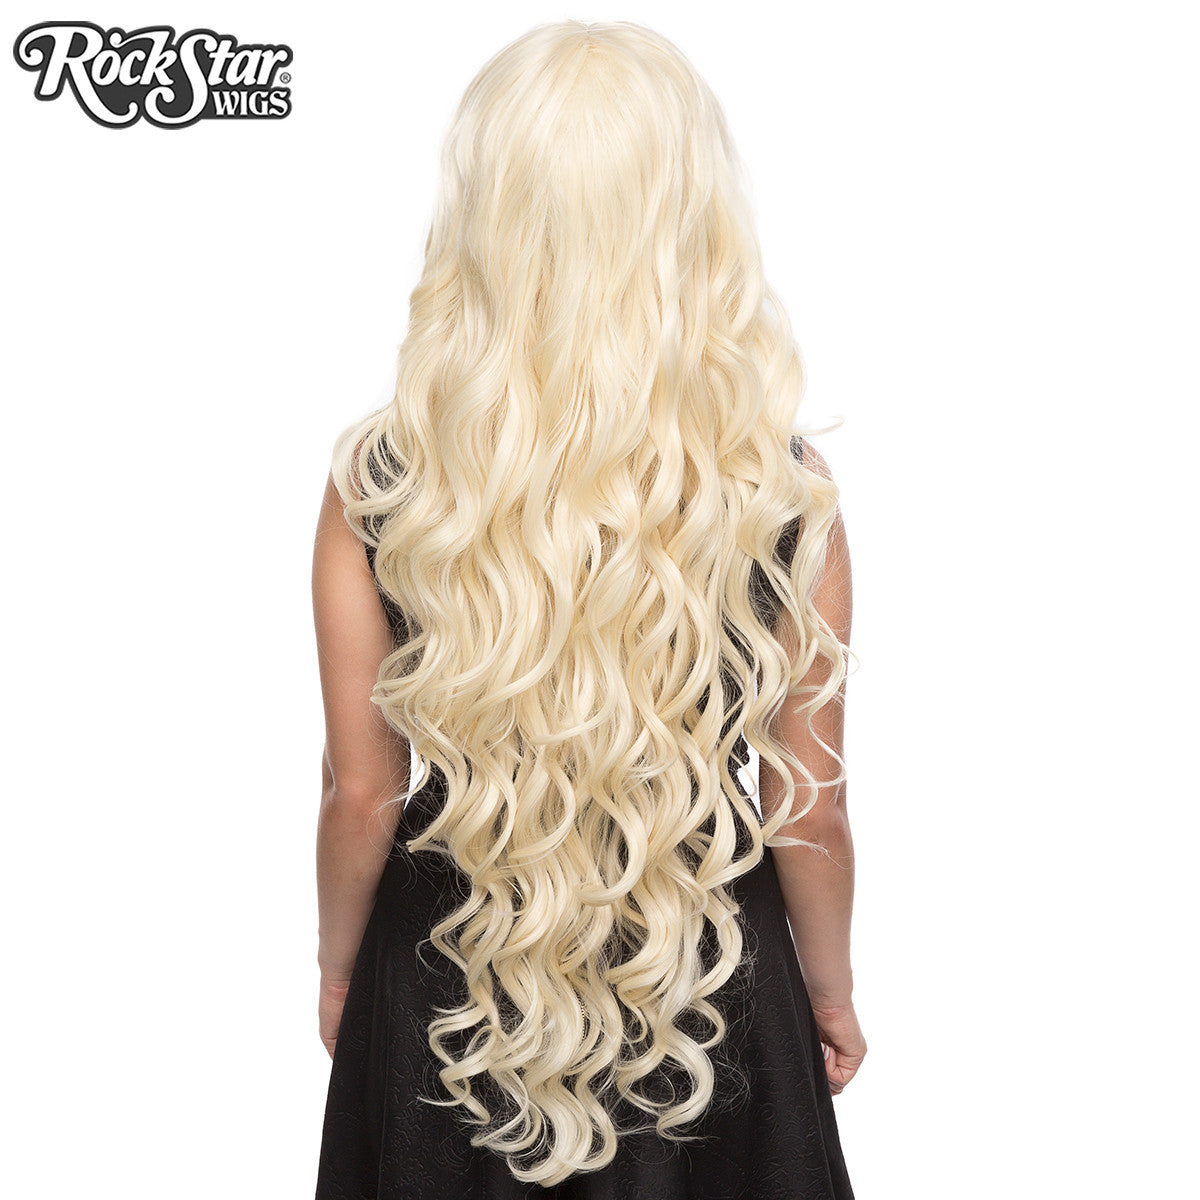 RockStar Wigs® <br> Godiva™ Collection - Platinum Blonde -00184